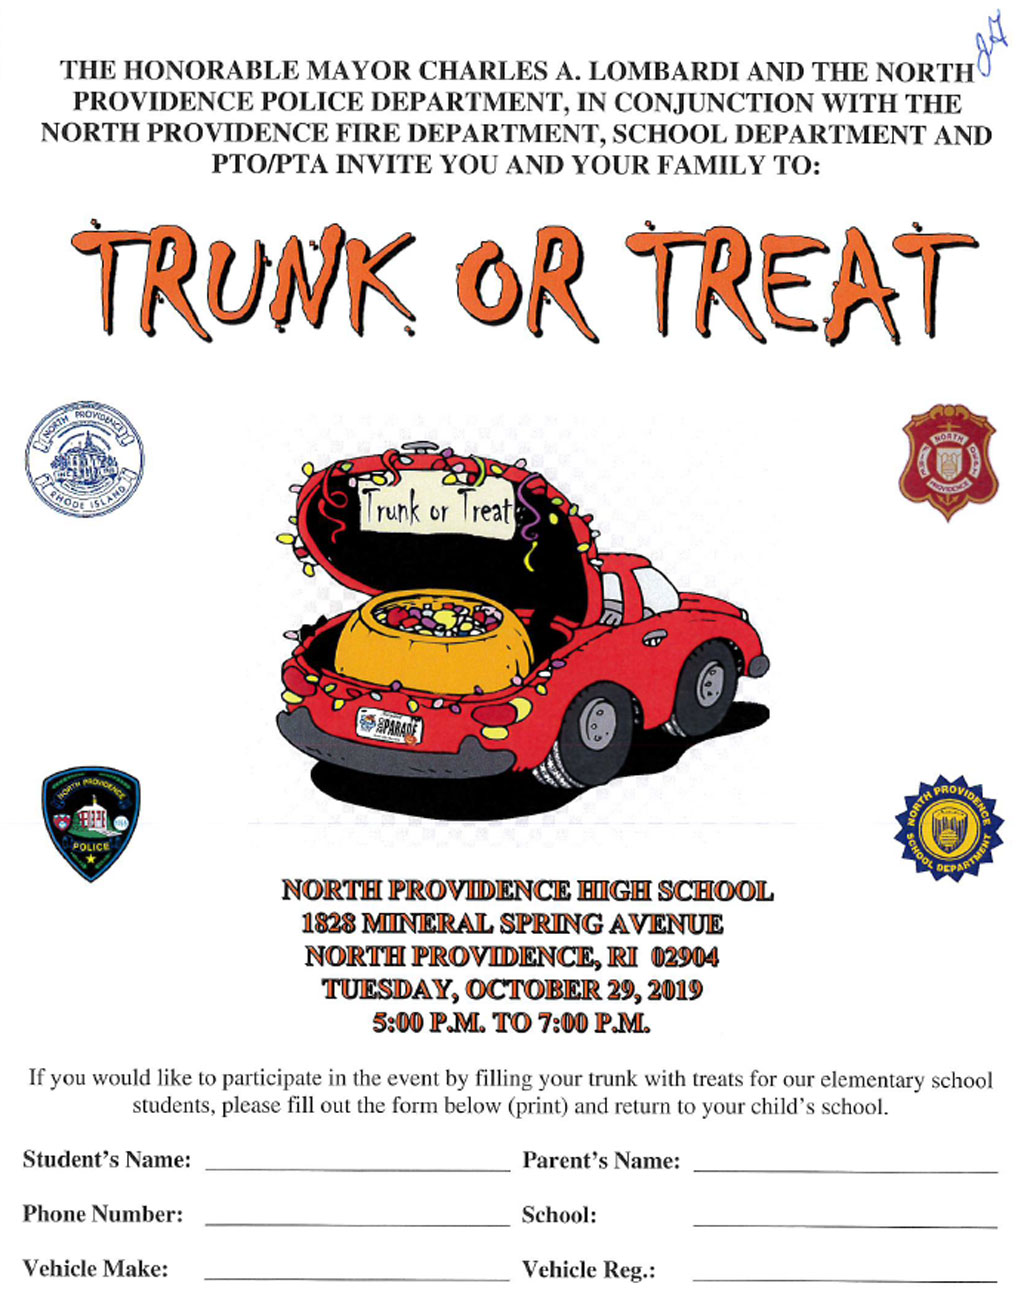 Trunk or Treat - Tuesday, October 29th at NPHS